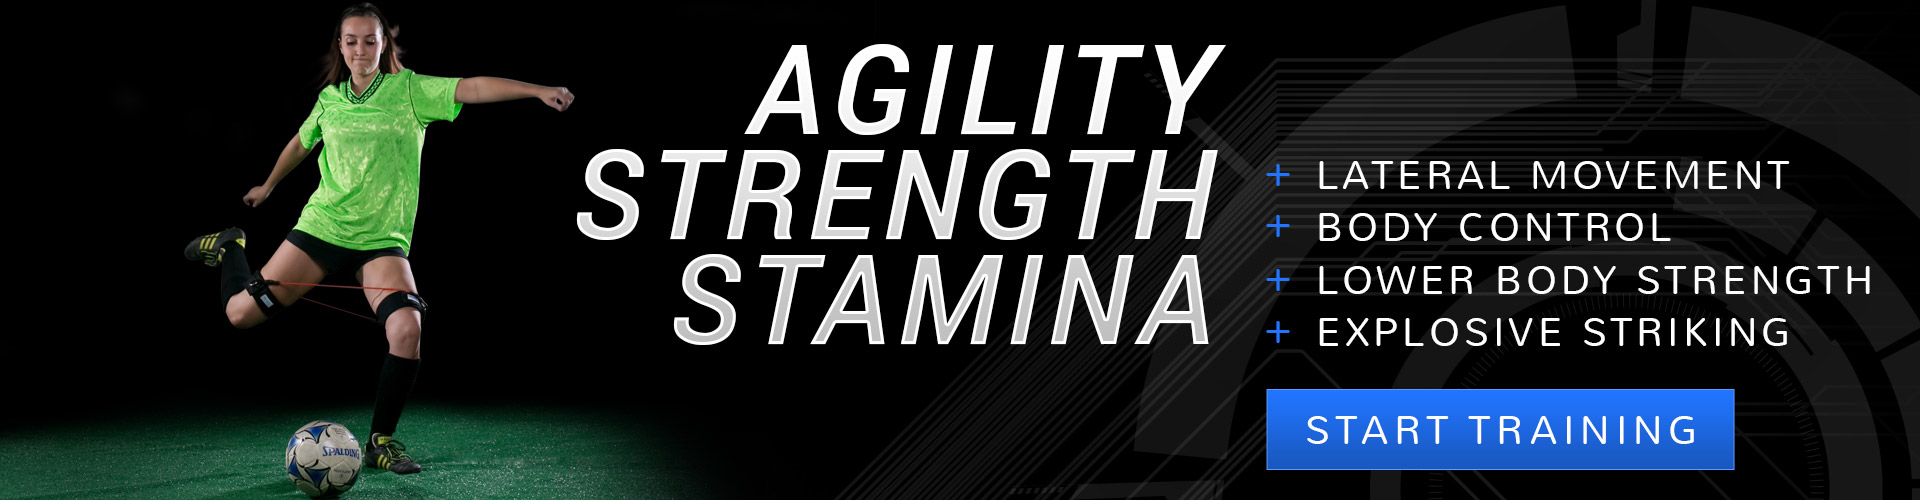 Agility, Strength, Stamina in Soccer: +Lateral Movement +Body Control +Lower Body Strength +Explosive Striking - Start Training